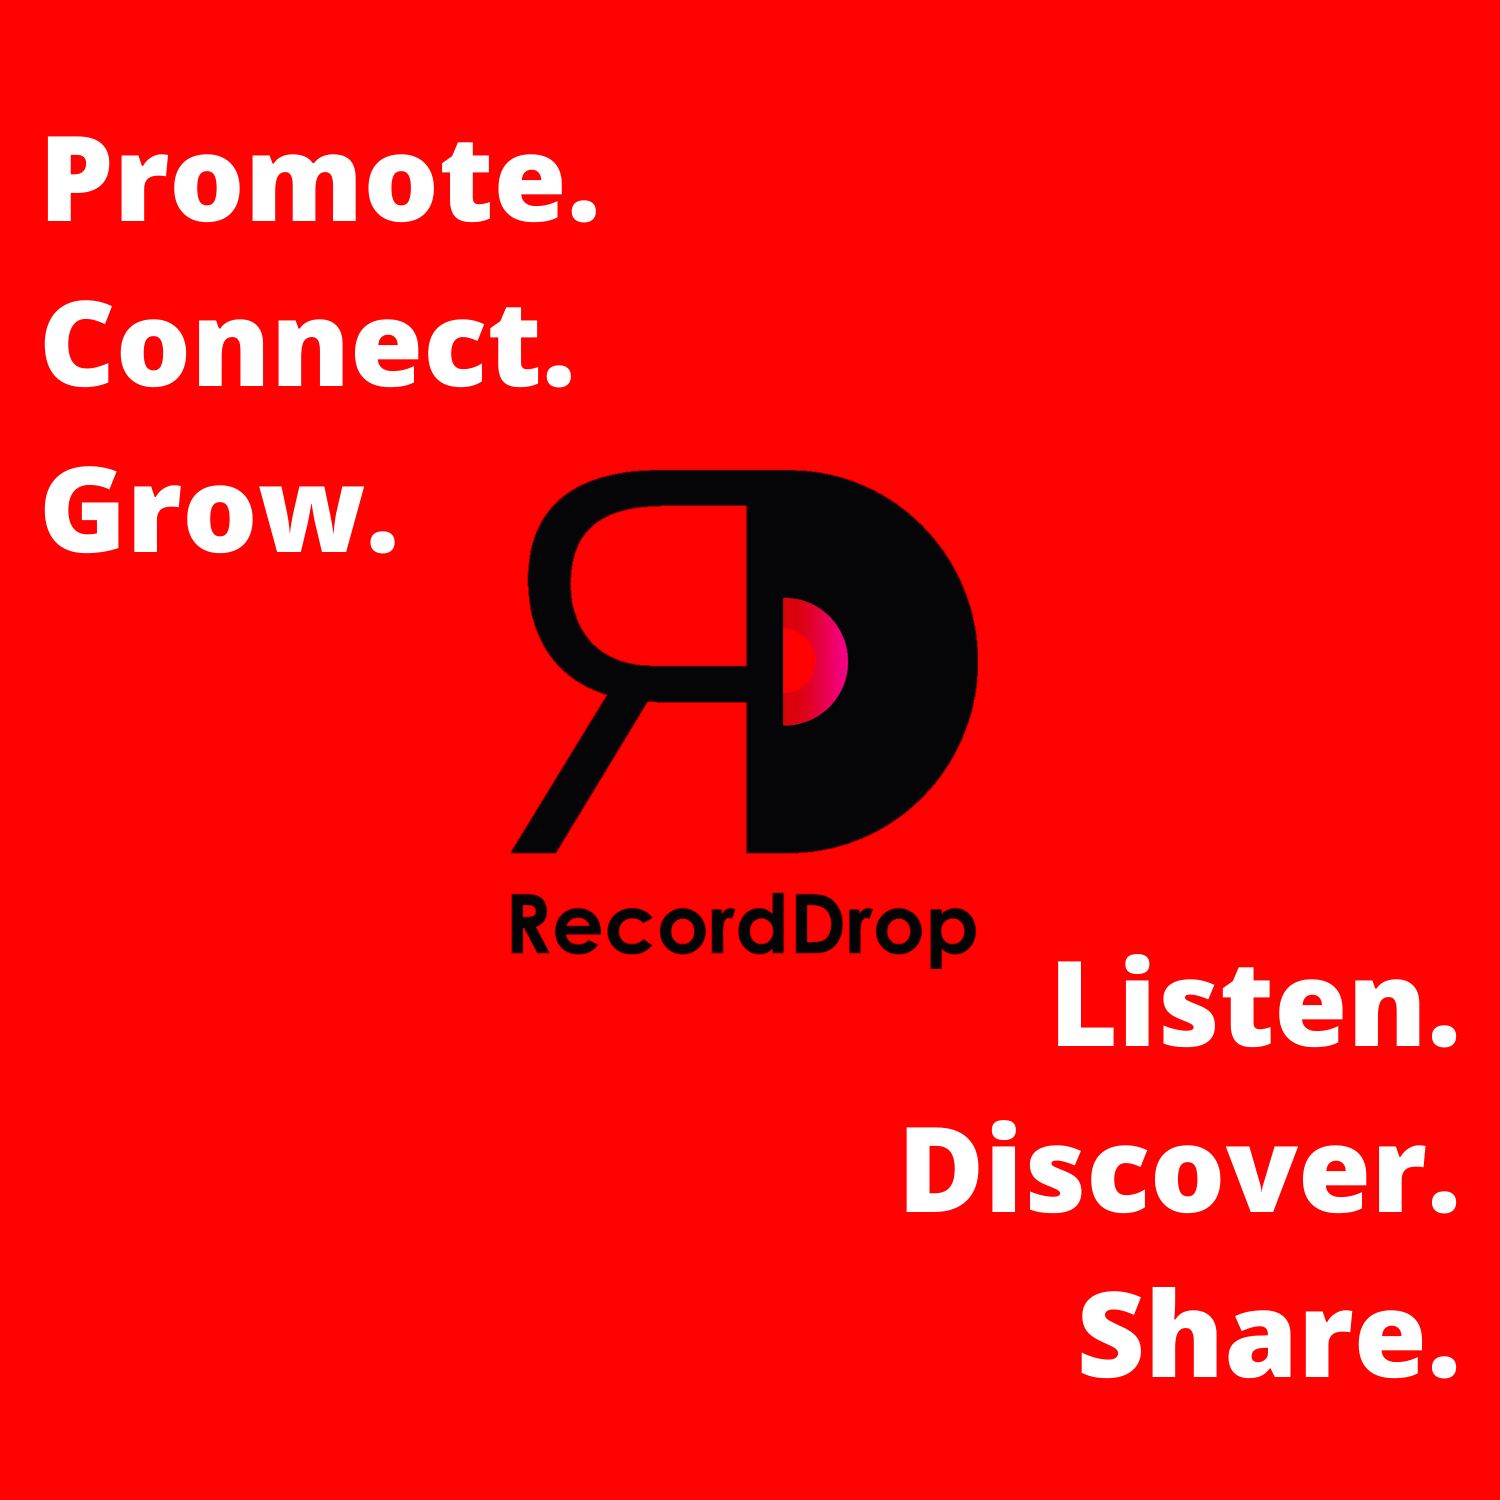 TIRED OF LOOKING FOR NEW MUSIC? THIS IS RECORDDROP.